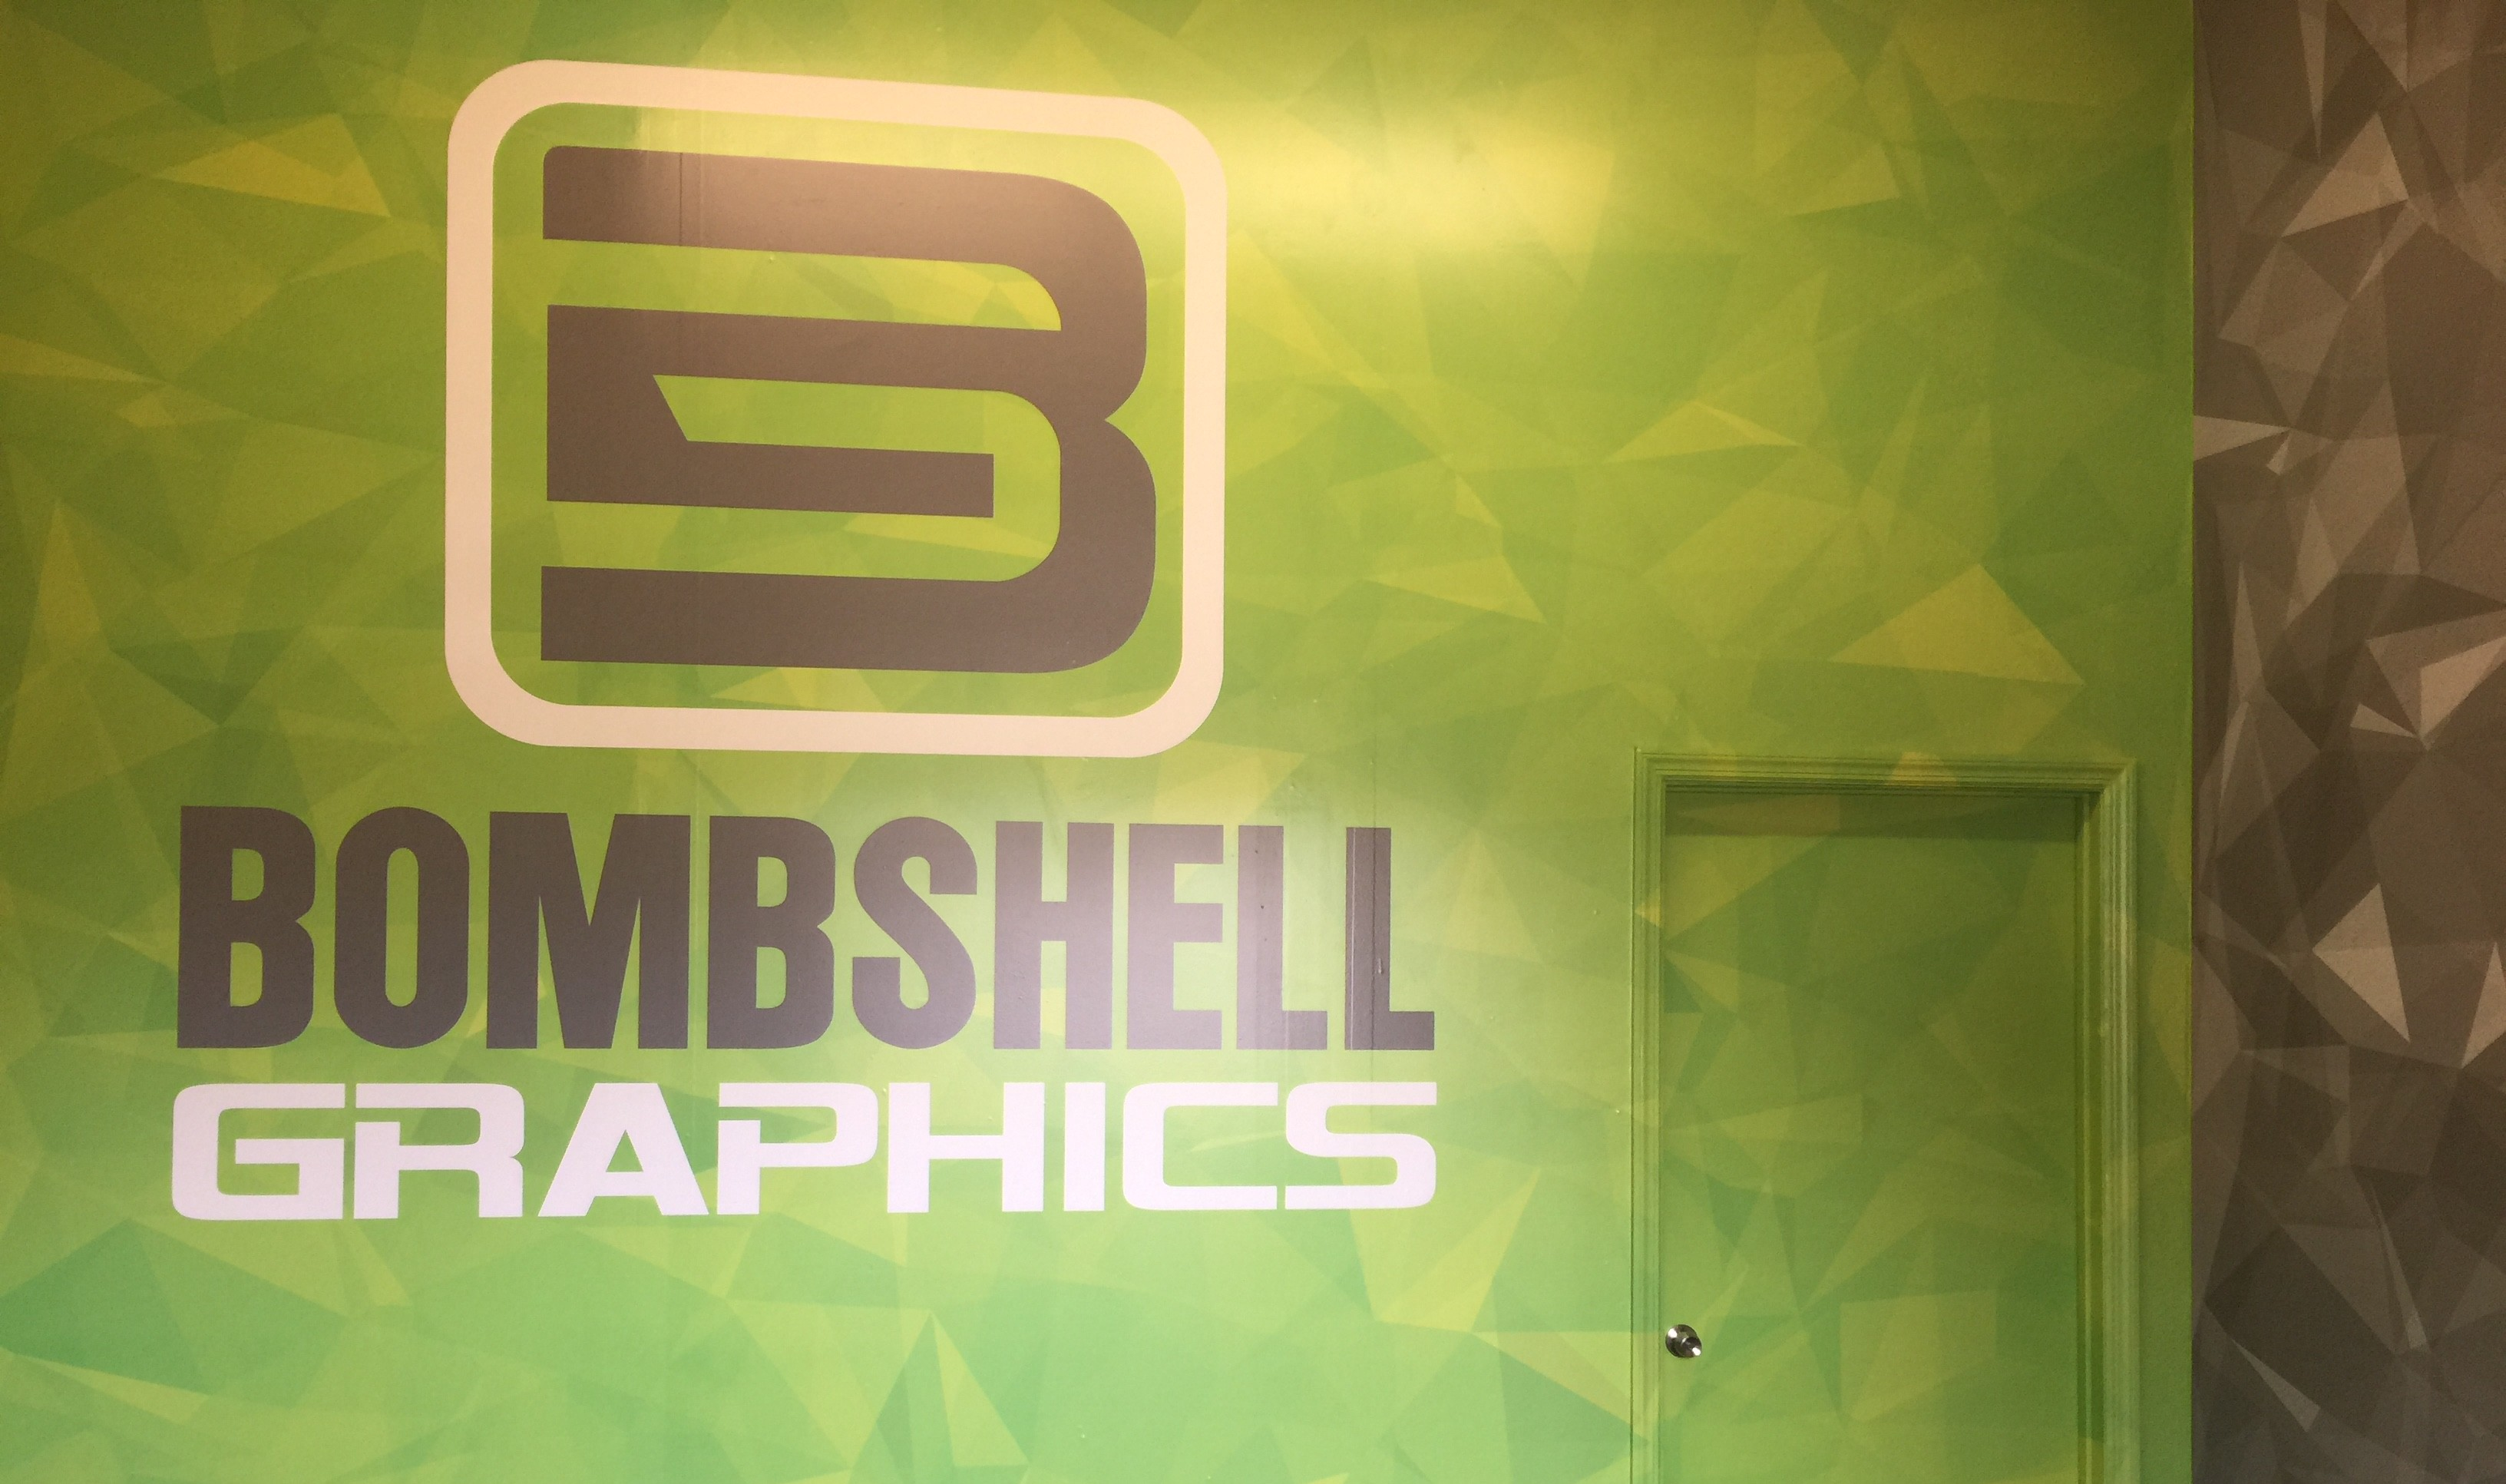 Some wall graphics and wall monograms from Bombshell Graphics